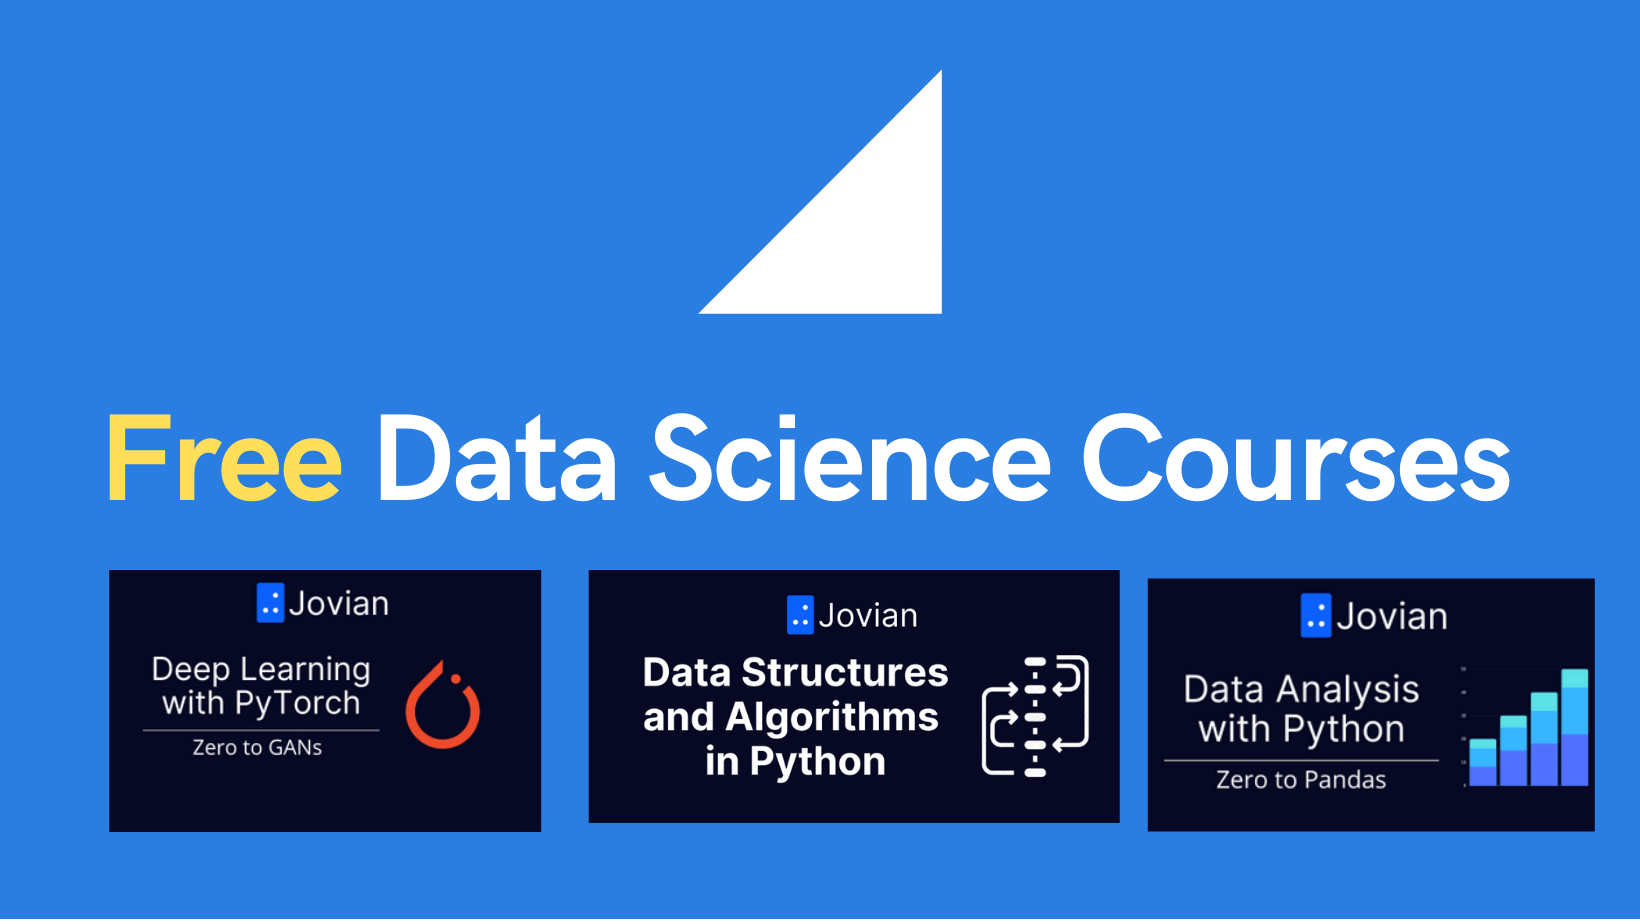 Data Science courses with free certificate